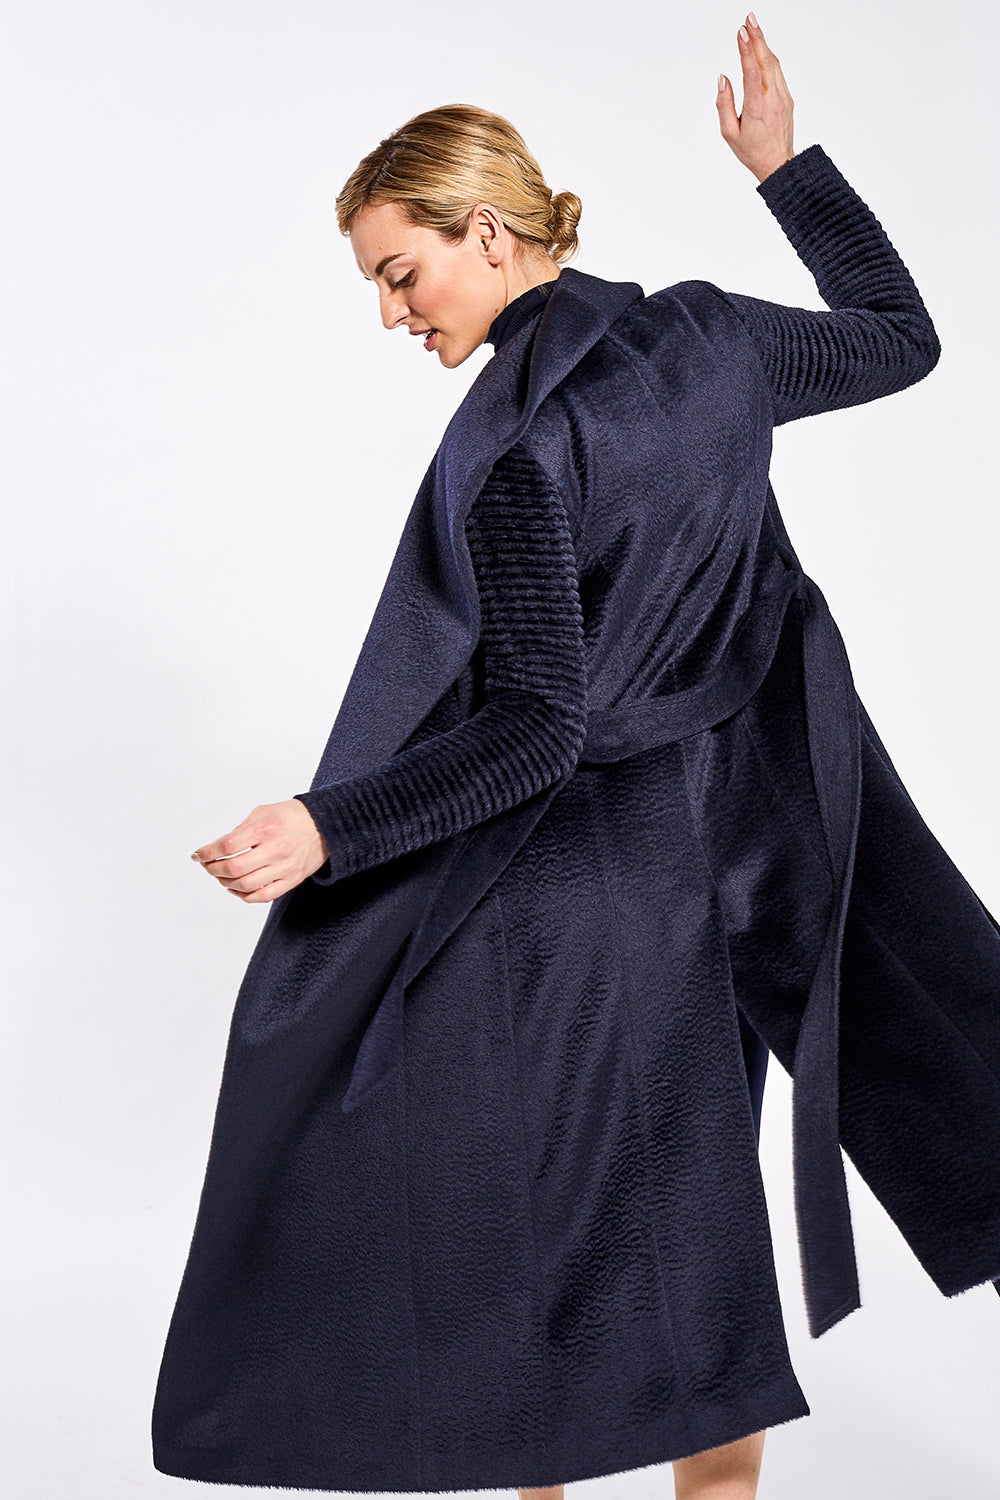 Sentaler Suri Alpaca Long Shawl Collar Wrap Coat with Ribbed Sleeves featured in Suri Alpaca and available in Navy. Seen in action.